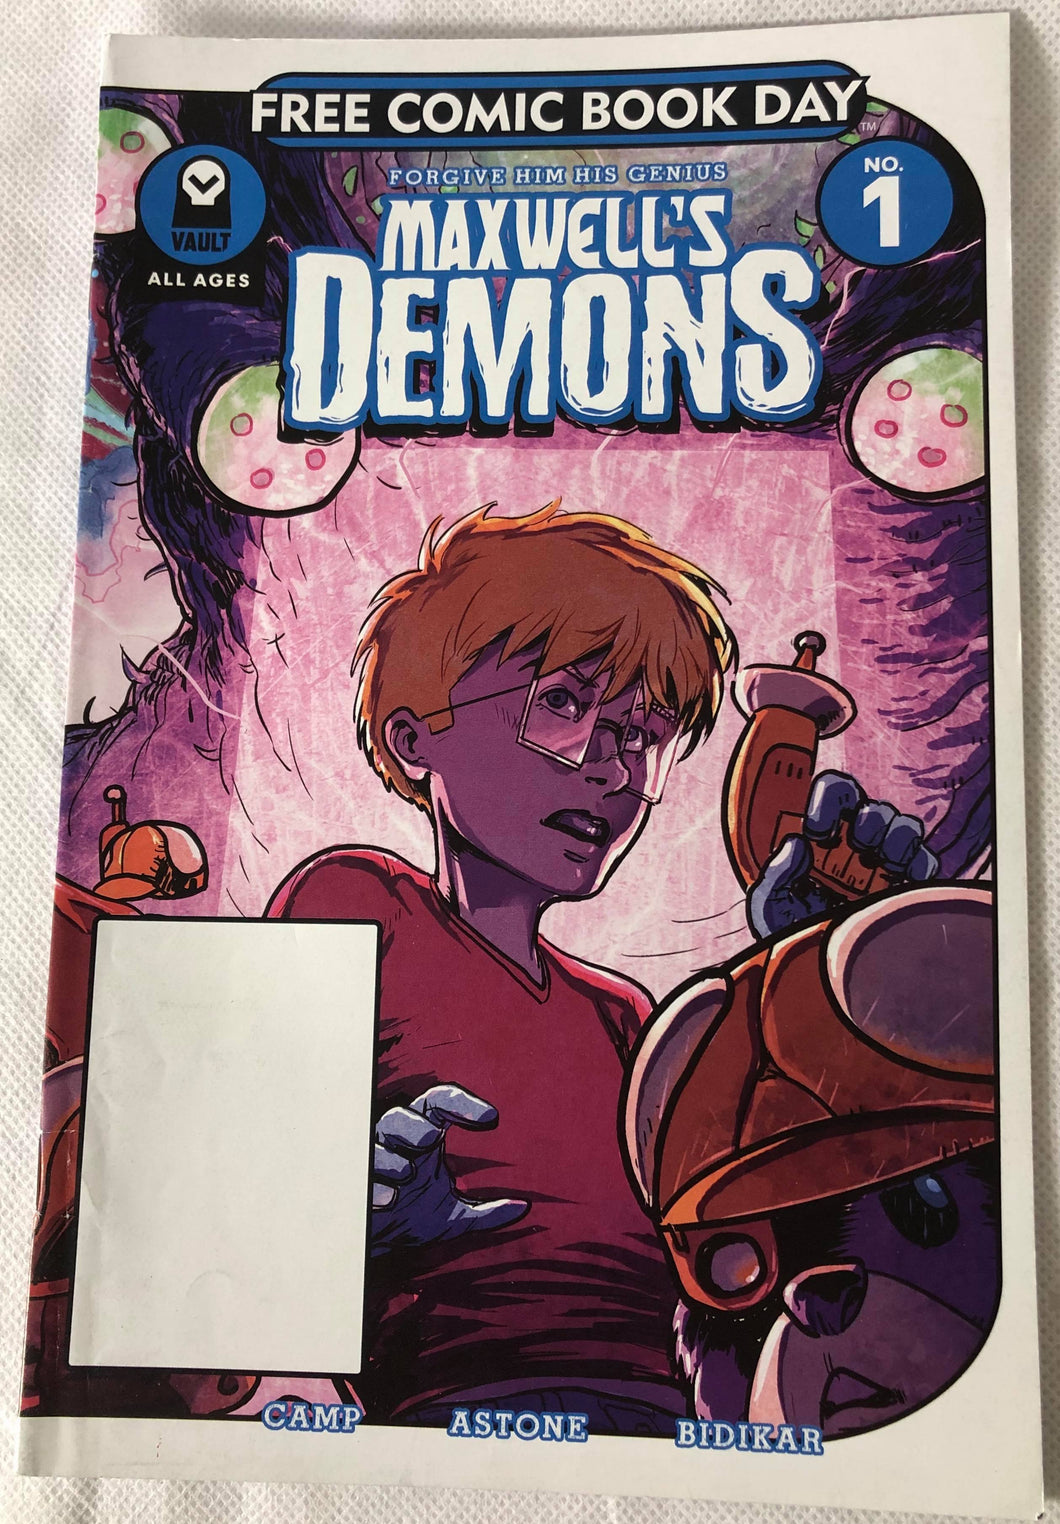 Maxwell's Demons #1 - Demize Collectibles LTD